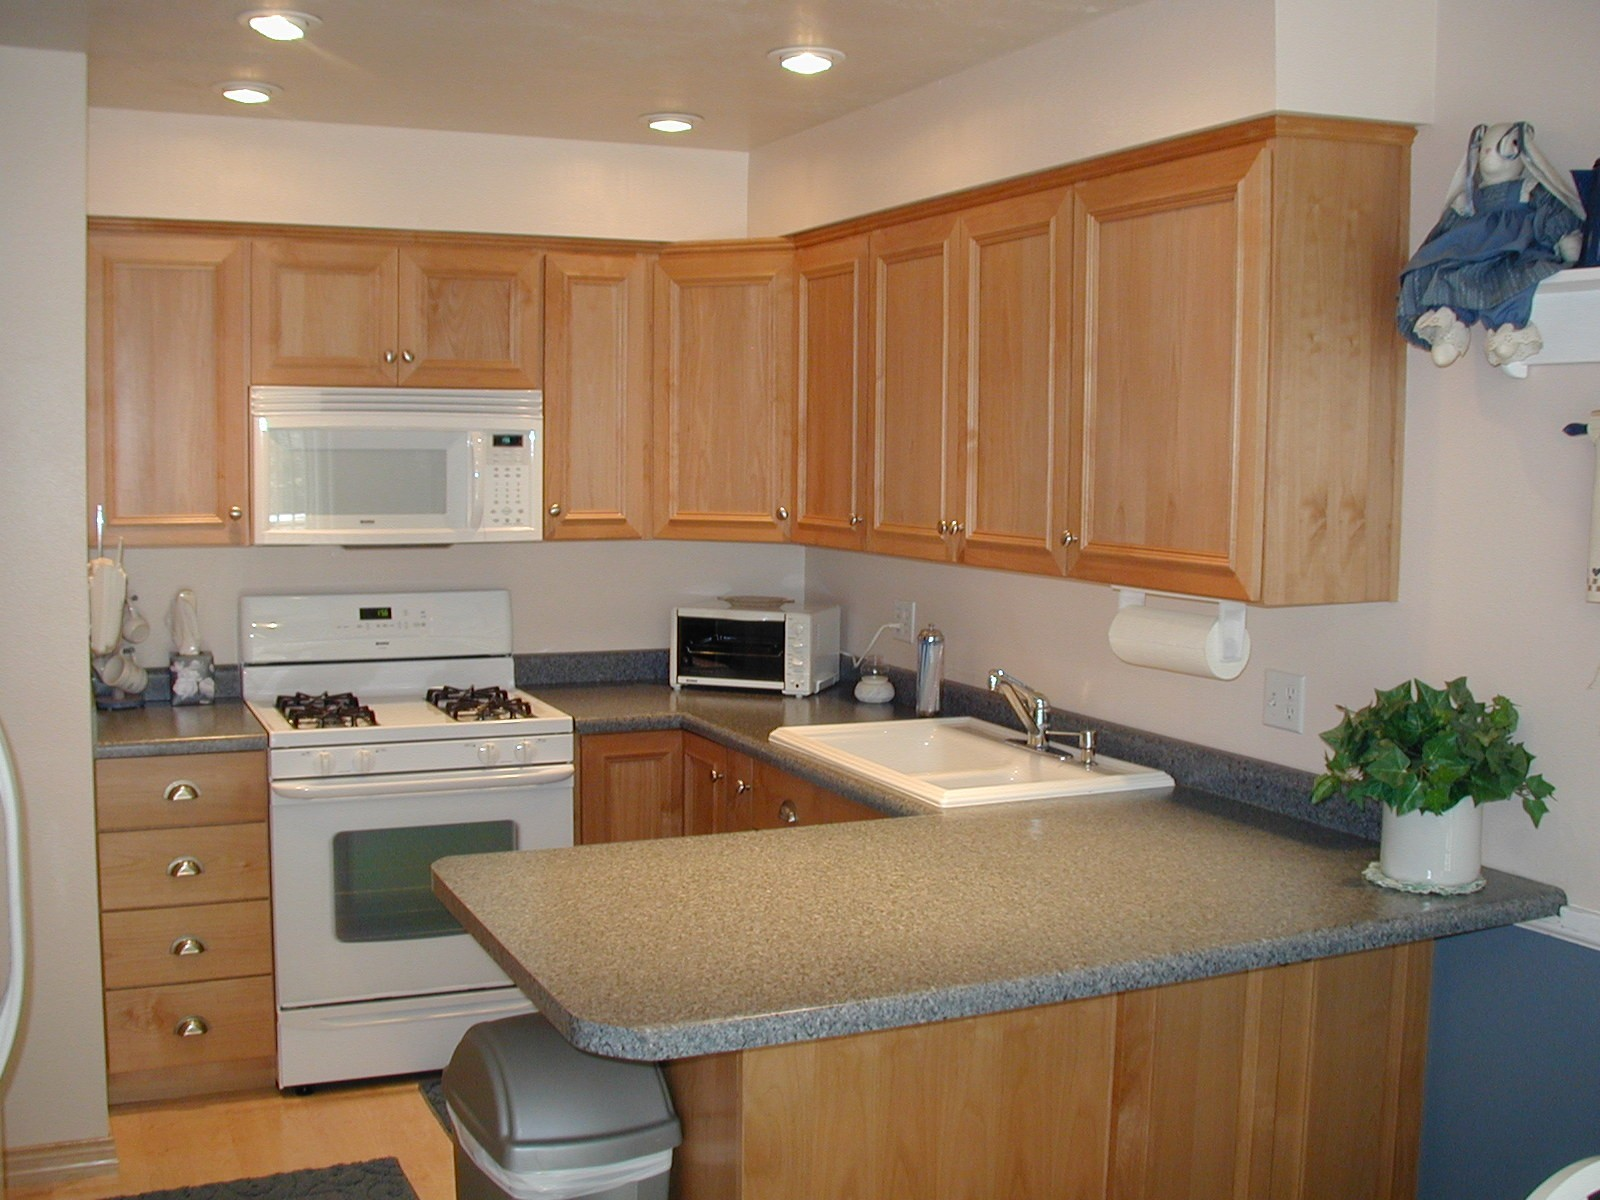 Stainless Vs White Appliances Paint Installed Cabinet Faucets House Remodeling